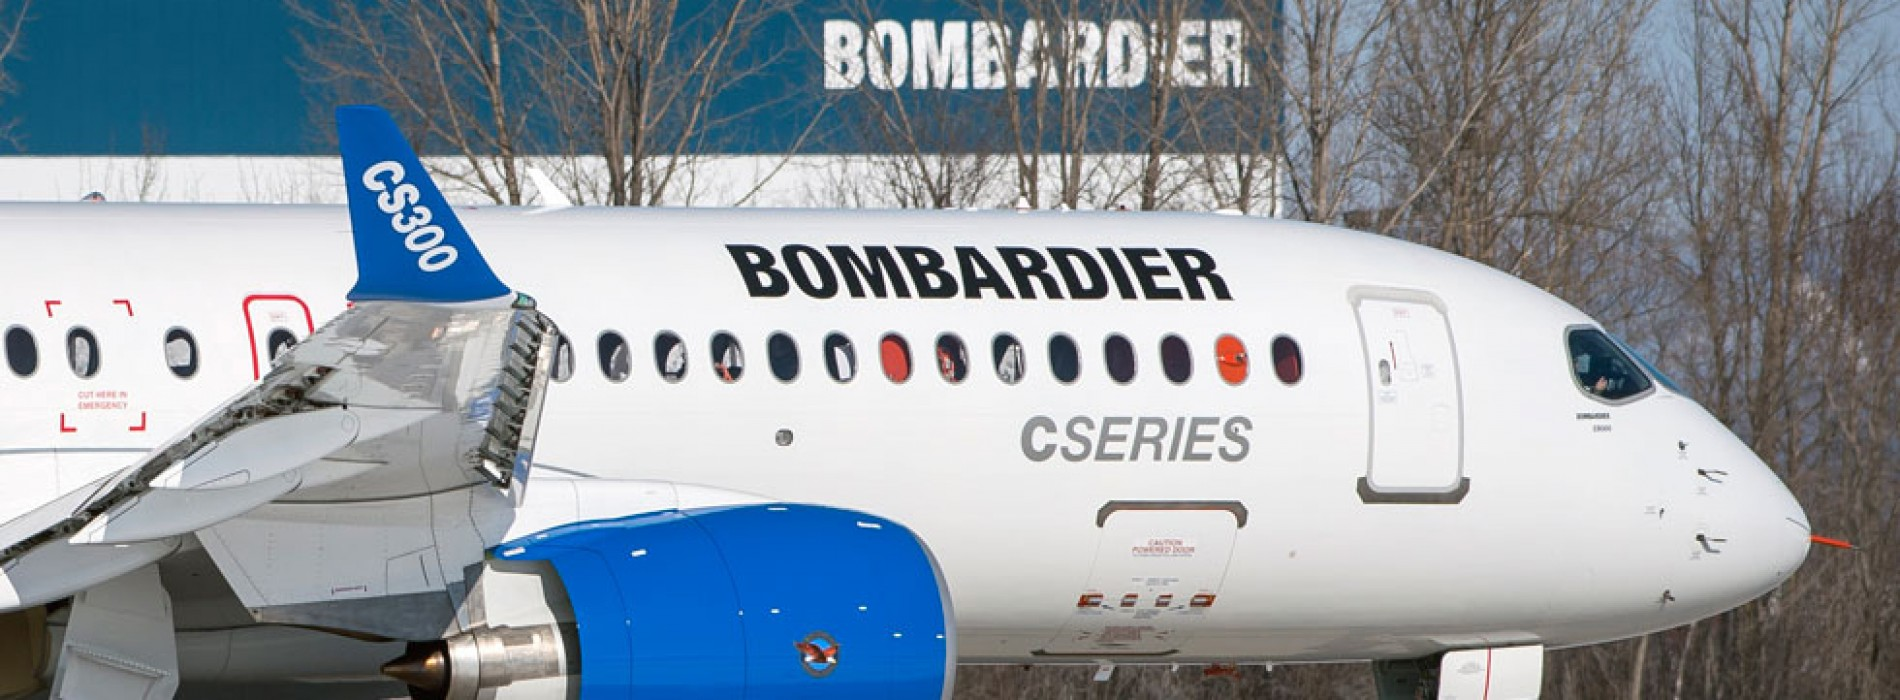 Bombardier aims to double fleet size to over 40 aircraft in India